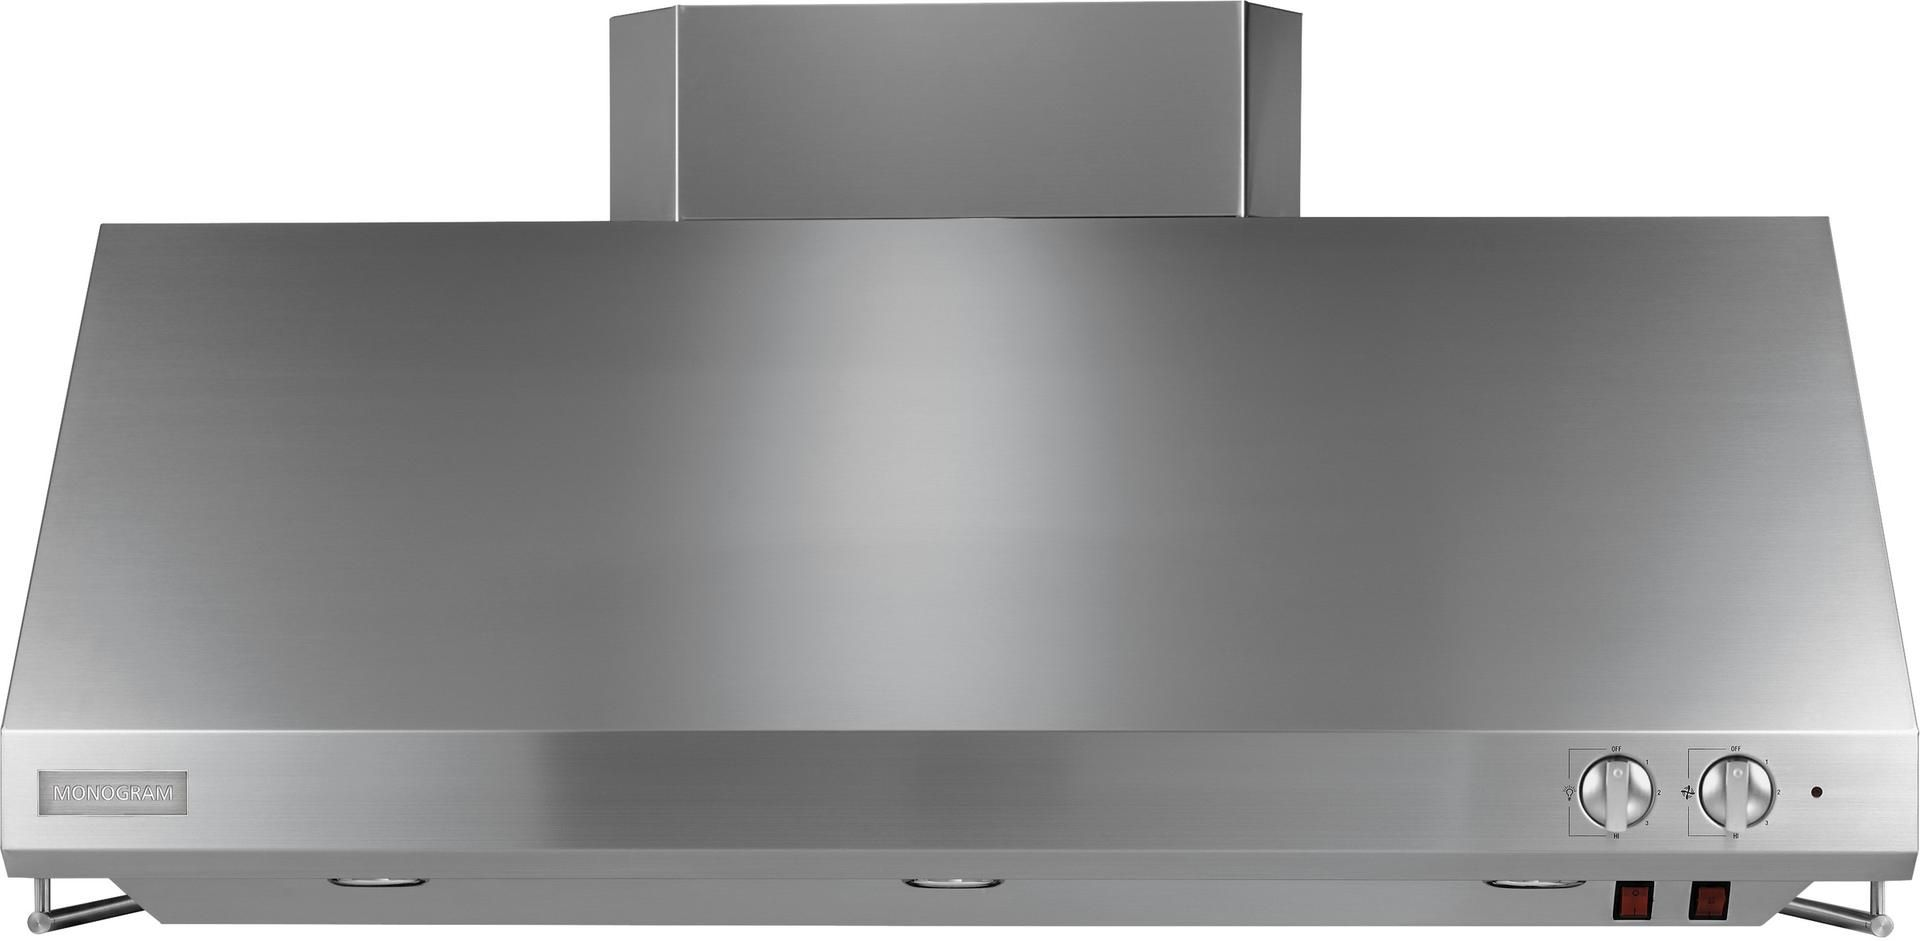 Zv48ssjss Monogram 48 Professional Hood With Utensil Racks And Removable Grease Trays Stainless Steel